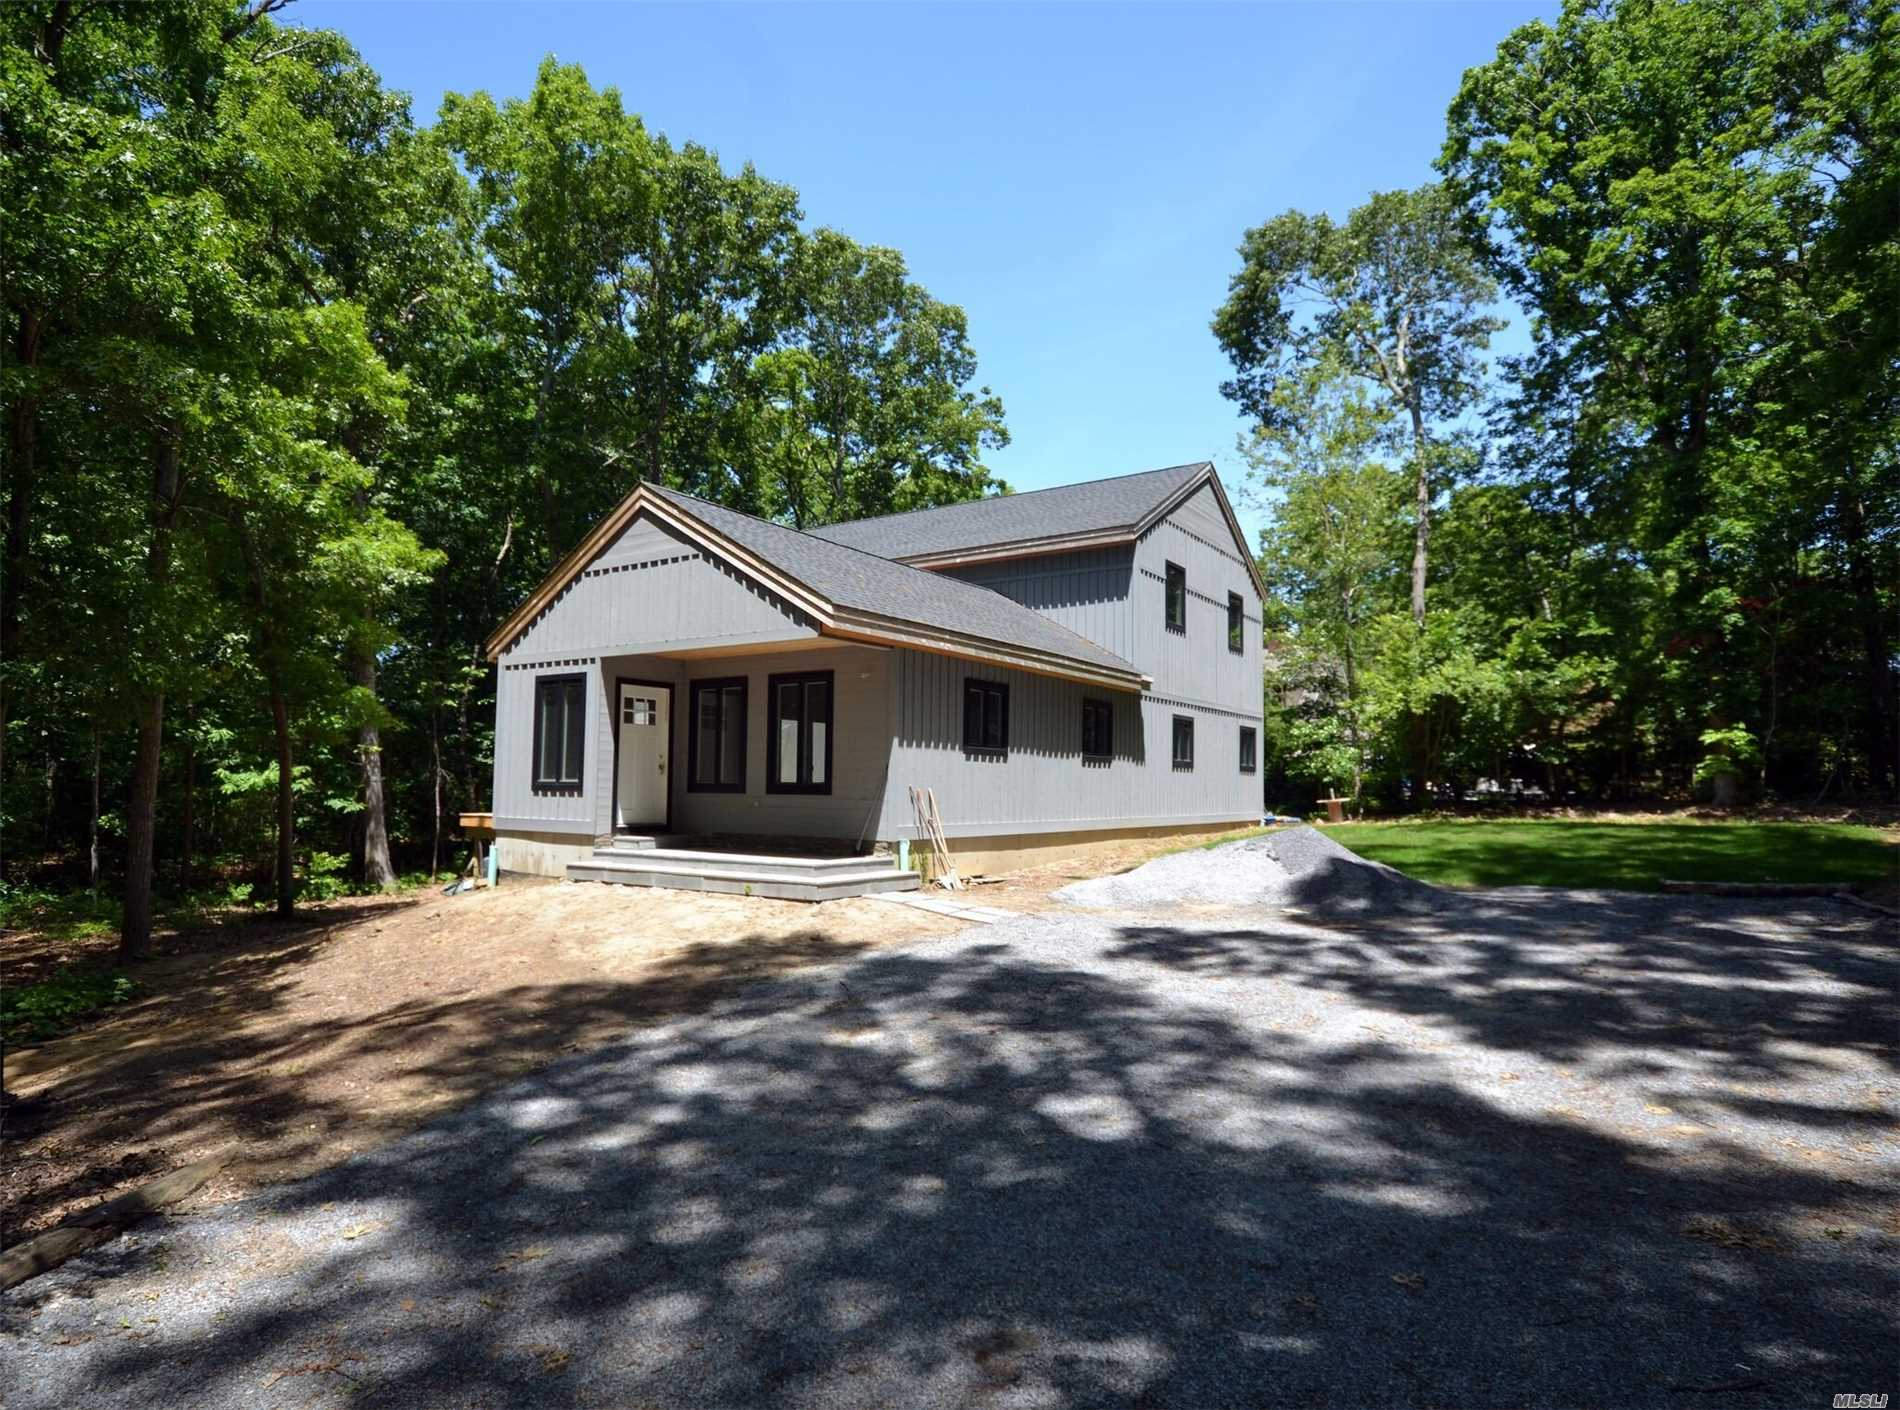 Modern Rustic Contemporary. 3000+ Sq. Ft. New Construction! Private 2.49 Acres Country Wooded Setting . Birdwatchers Paradise. Nature Lovers Setting. Step Away From The Whirlwind And Rewind In Your Modern Retreat..Wooded Sanctuary. Large Master Br With 2 Spacious Walk In Closets. Close To Beaches, Golf, Wineries, Vineyards, Boating And Fabulous North Fork Restaurants.